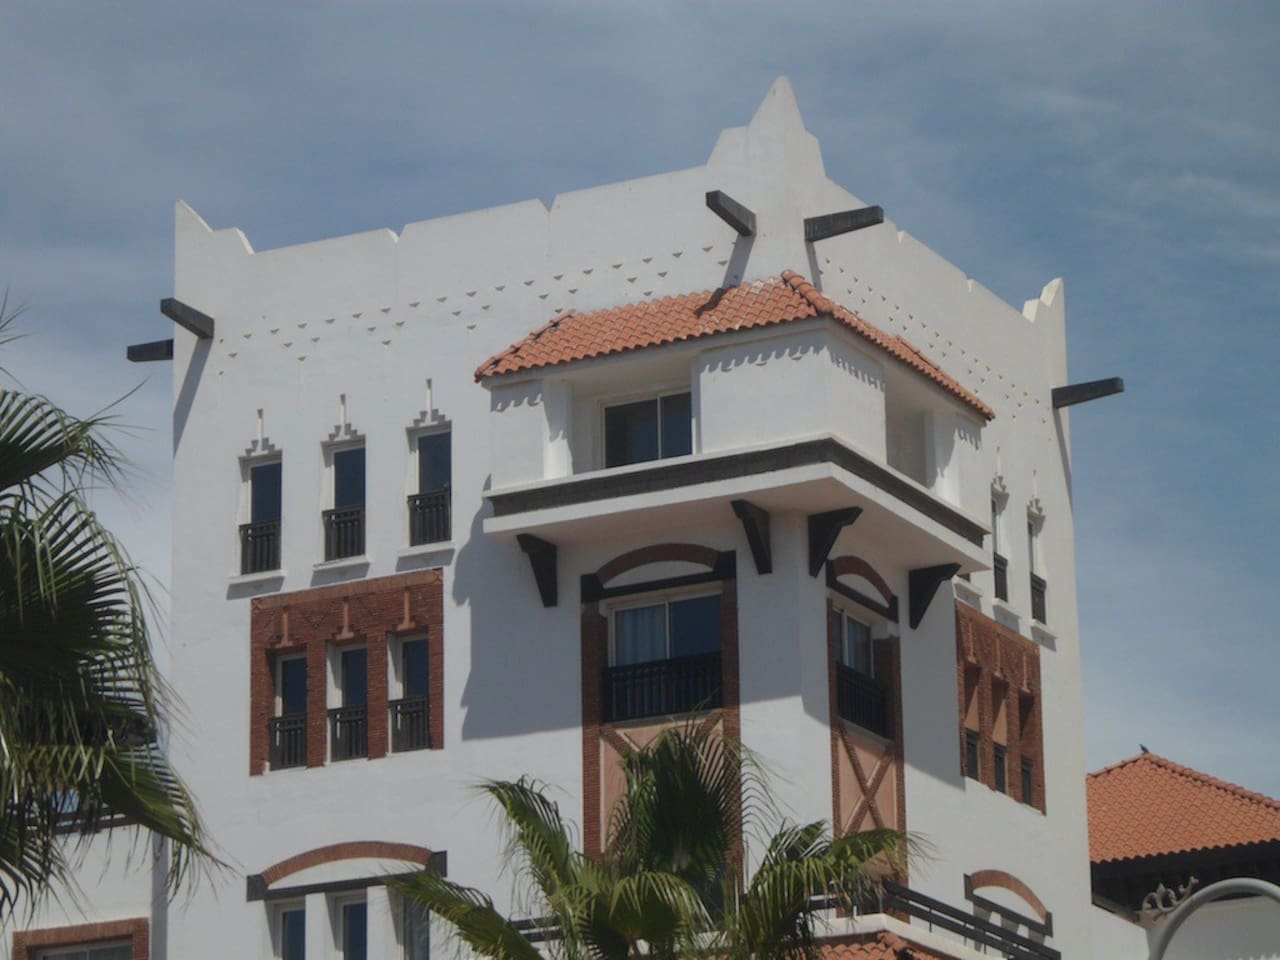 Outside view of the Penthouse